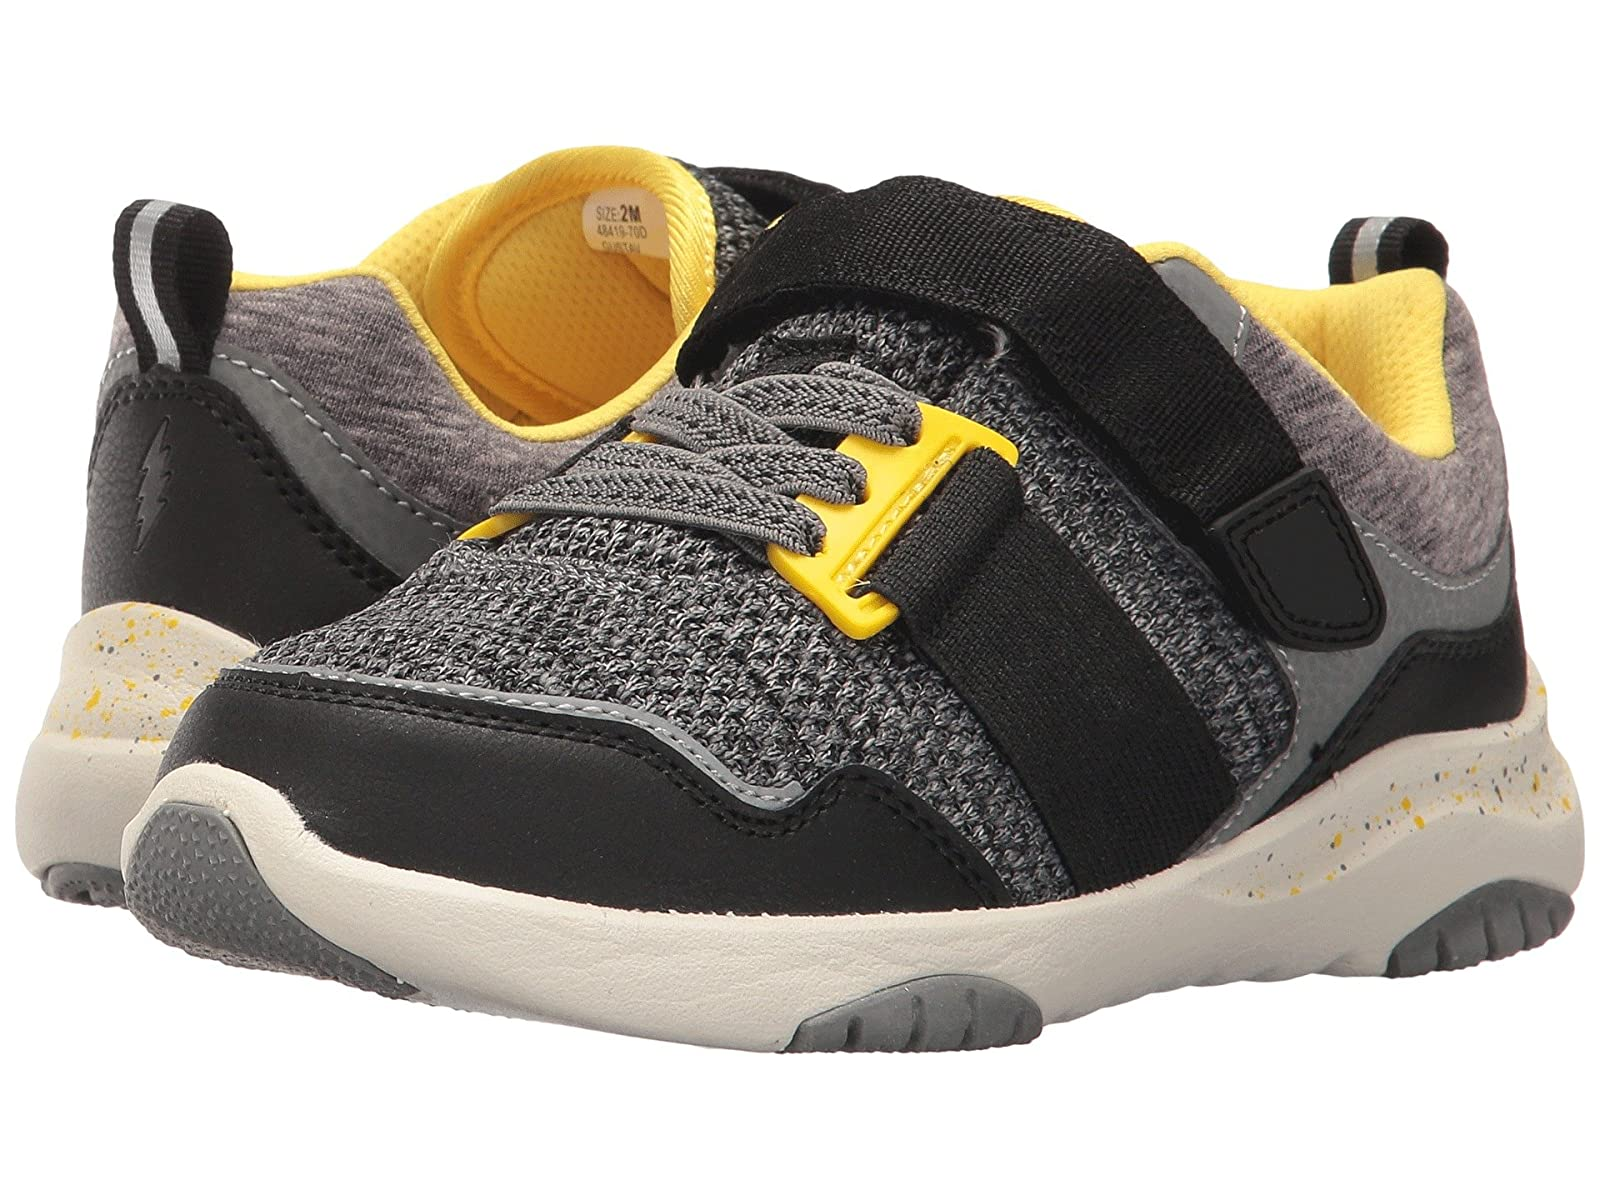 Hanna Andersson Gustav (Toddler/Little Kid/Big Kid)Cheap and distinctive eye-catching shoes